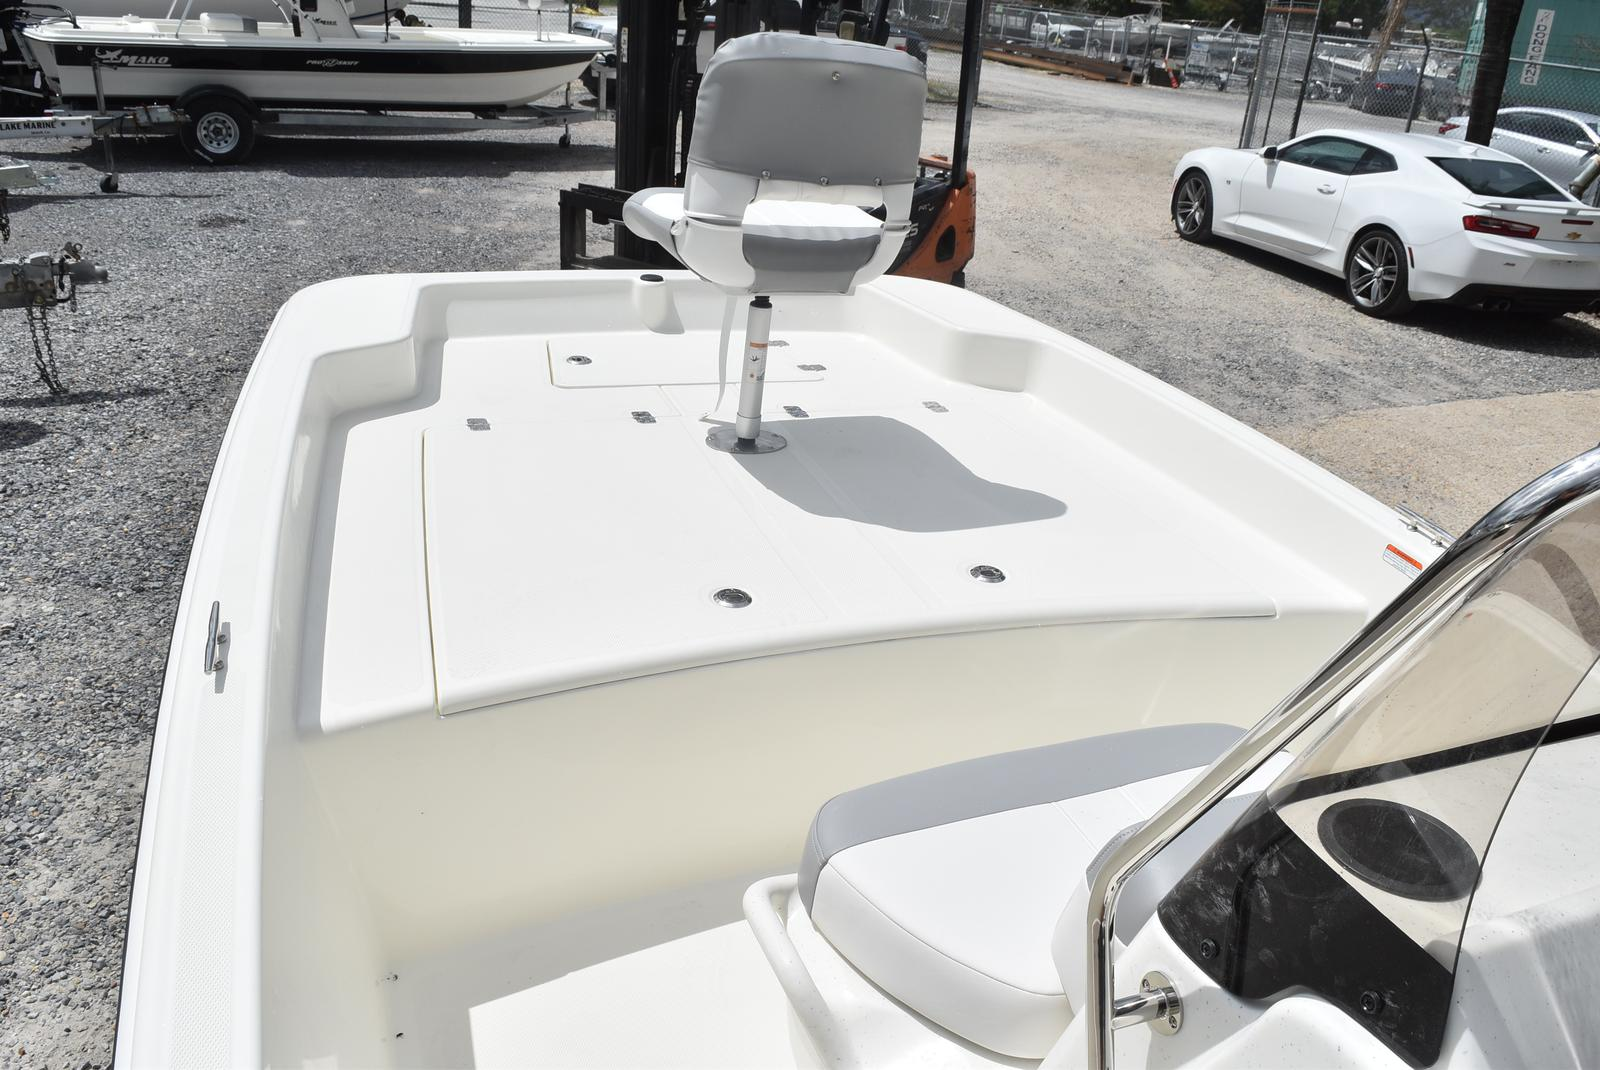 2020 Mako boat for sale, model of the boat is Pro Skiff 17, 75 ELPT & Image # 461 of 702